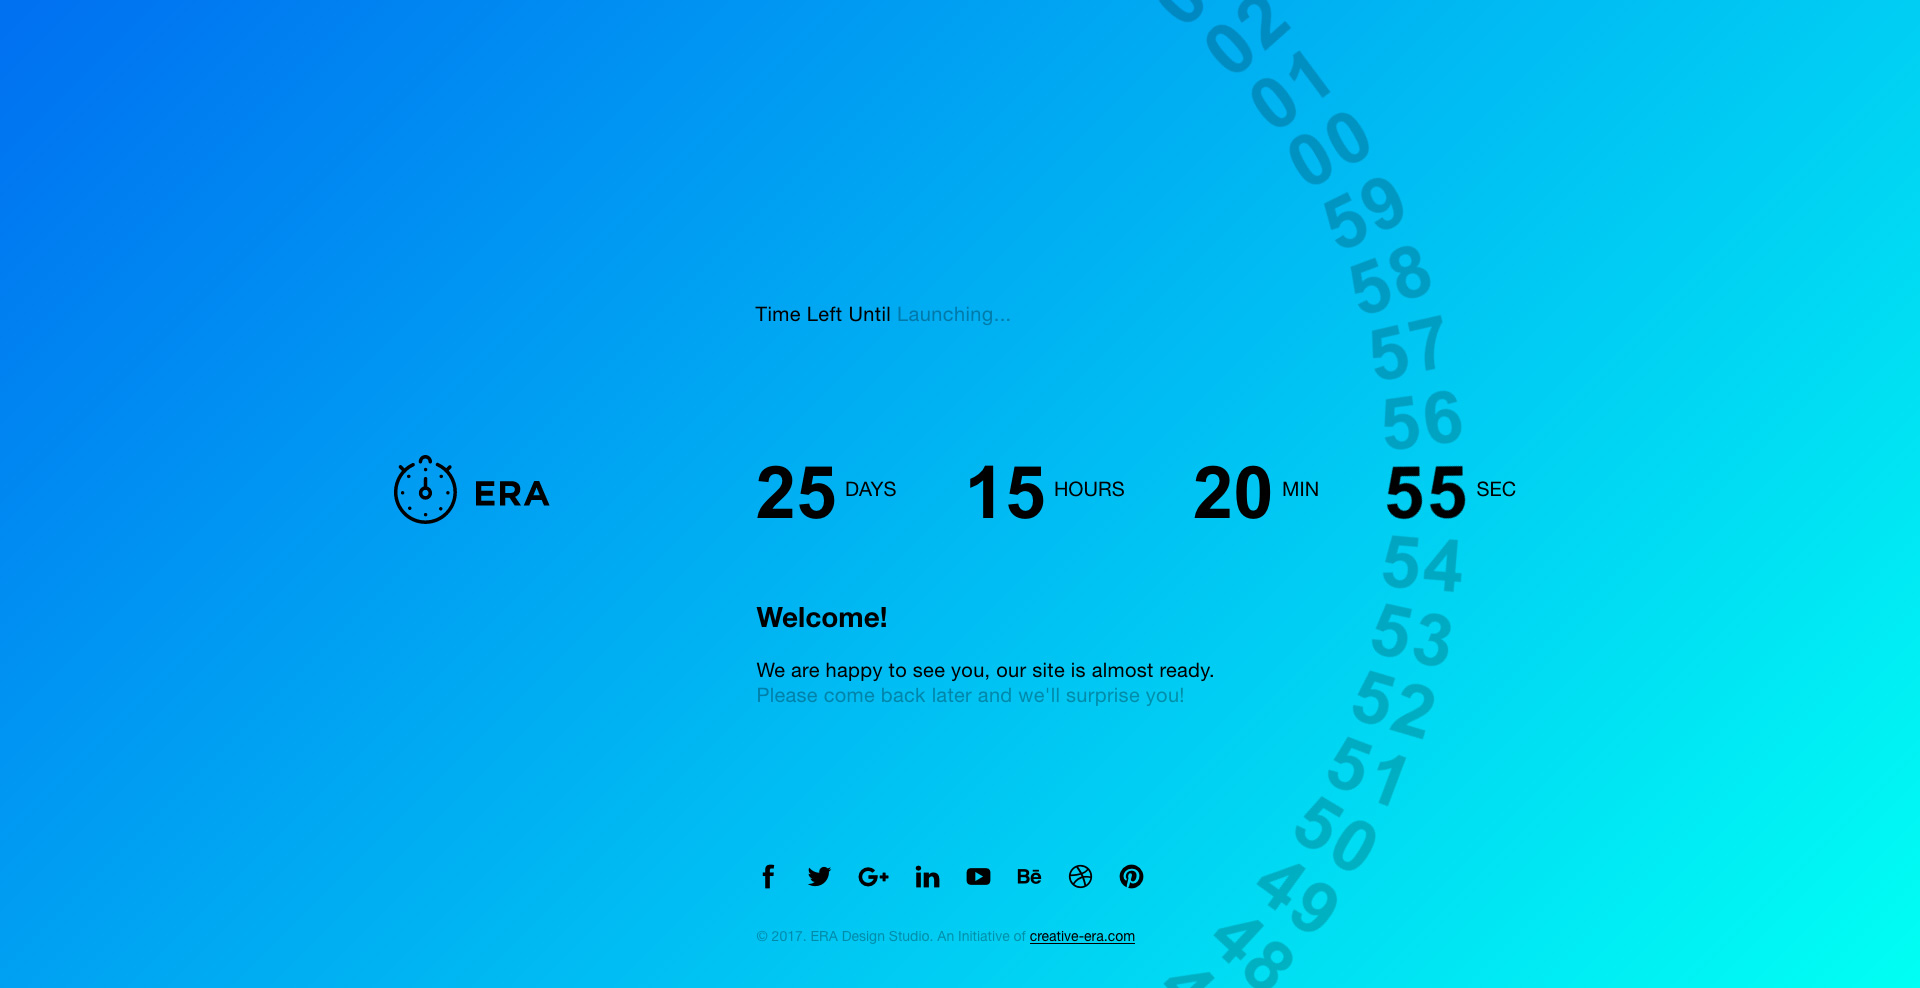 Era Animated Coming Soon Countdown Template By Creativeera